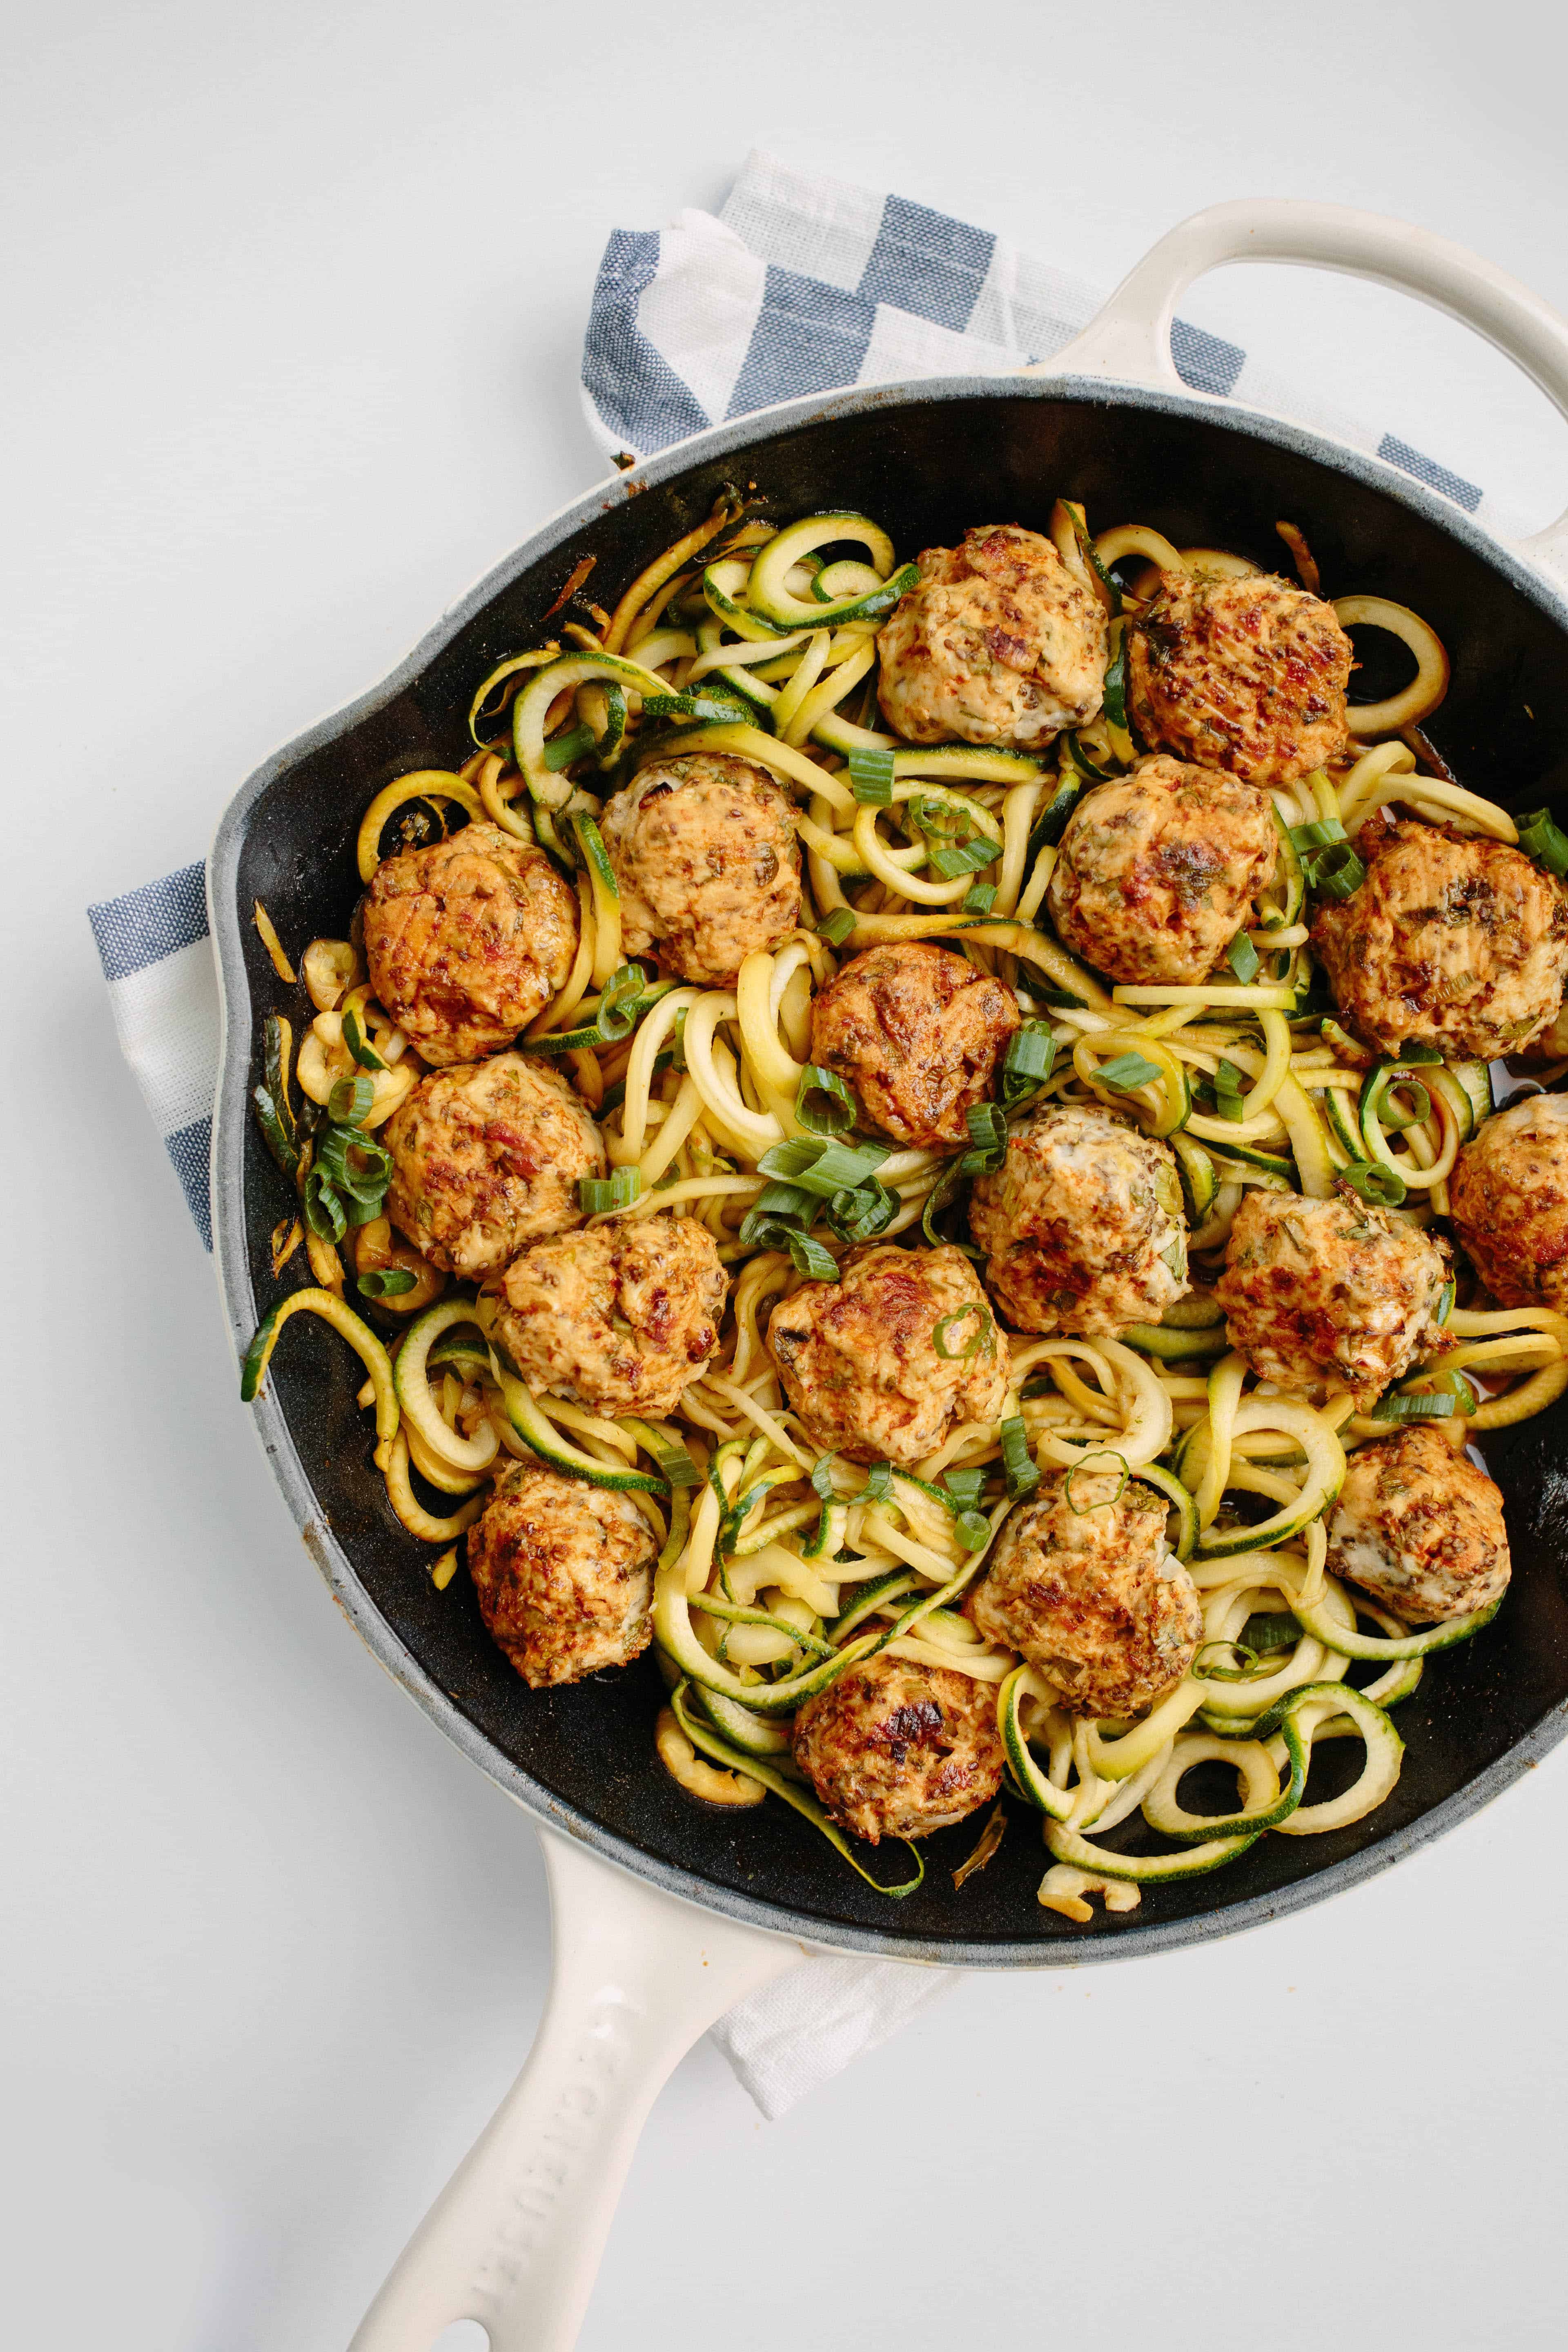 Thai Chicken Meatballs with Zucchini Noodles